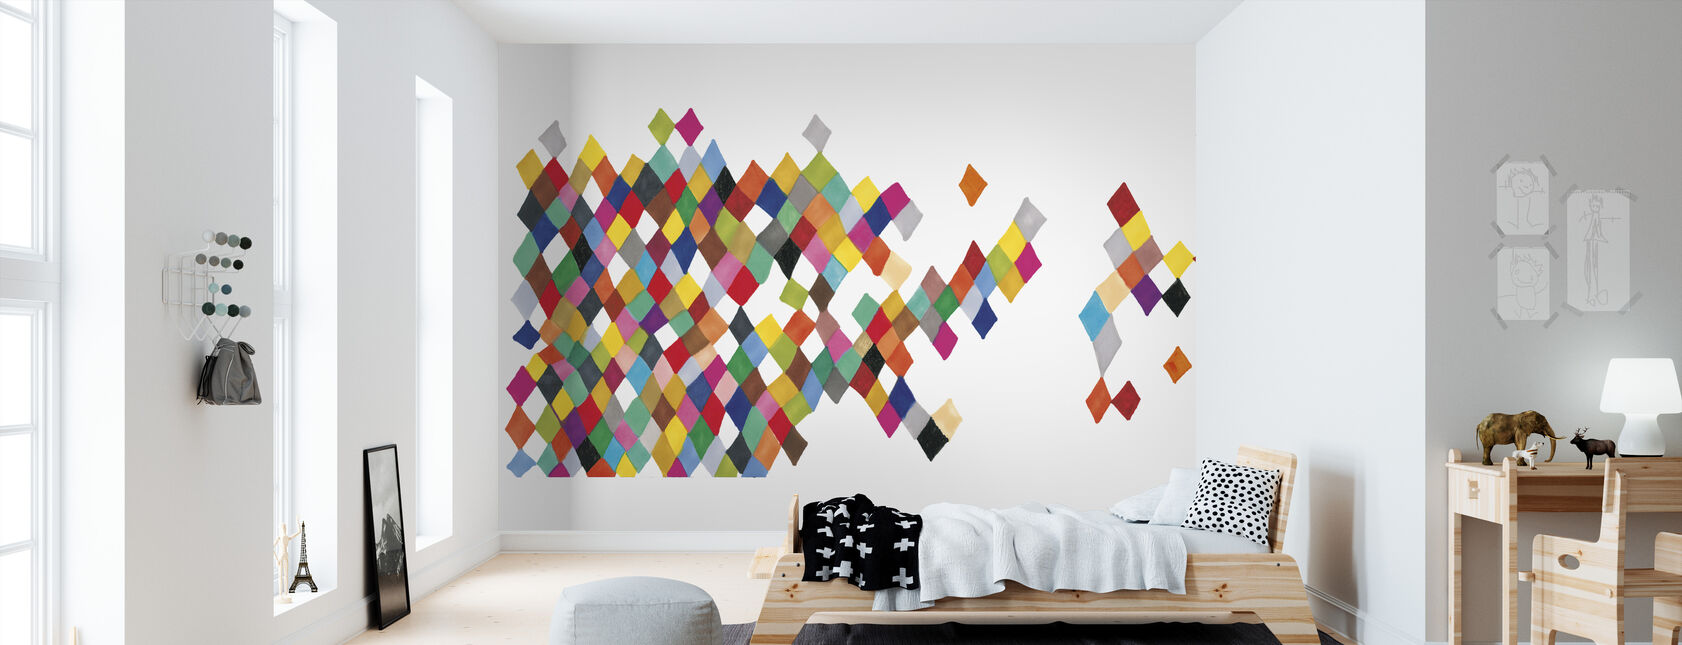 Motley Harlequin Motley Boxes - Wallpaper - Kids Room